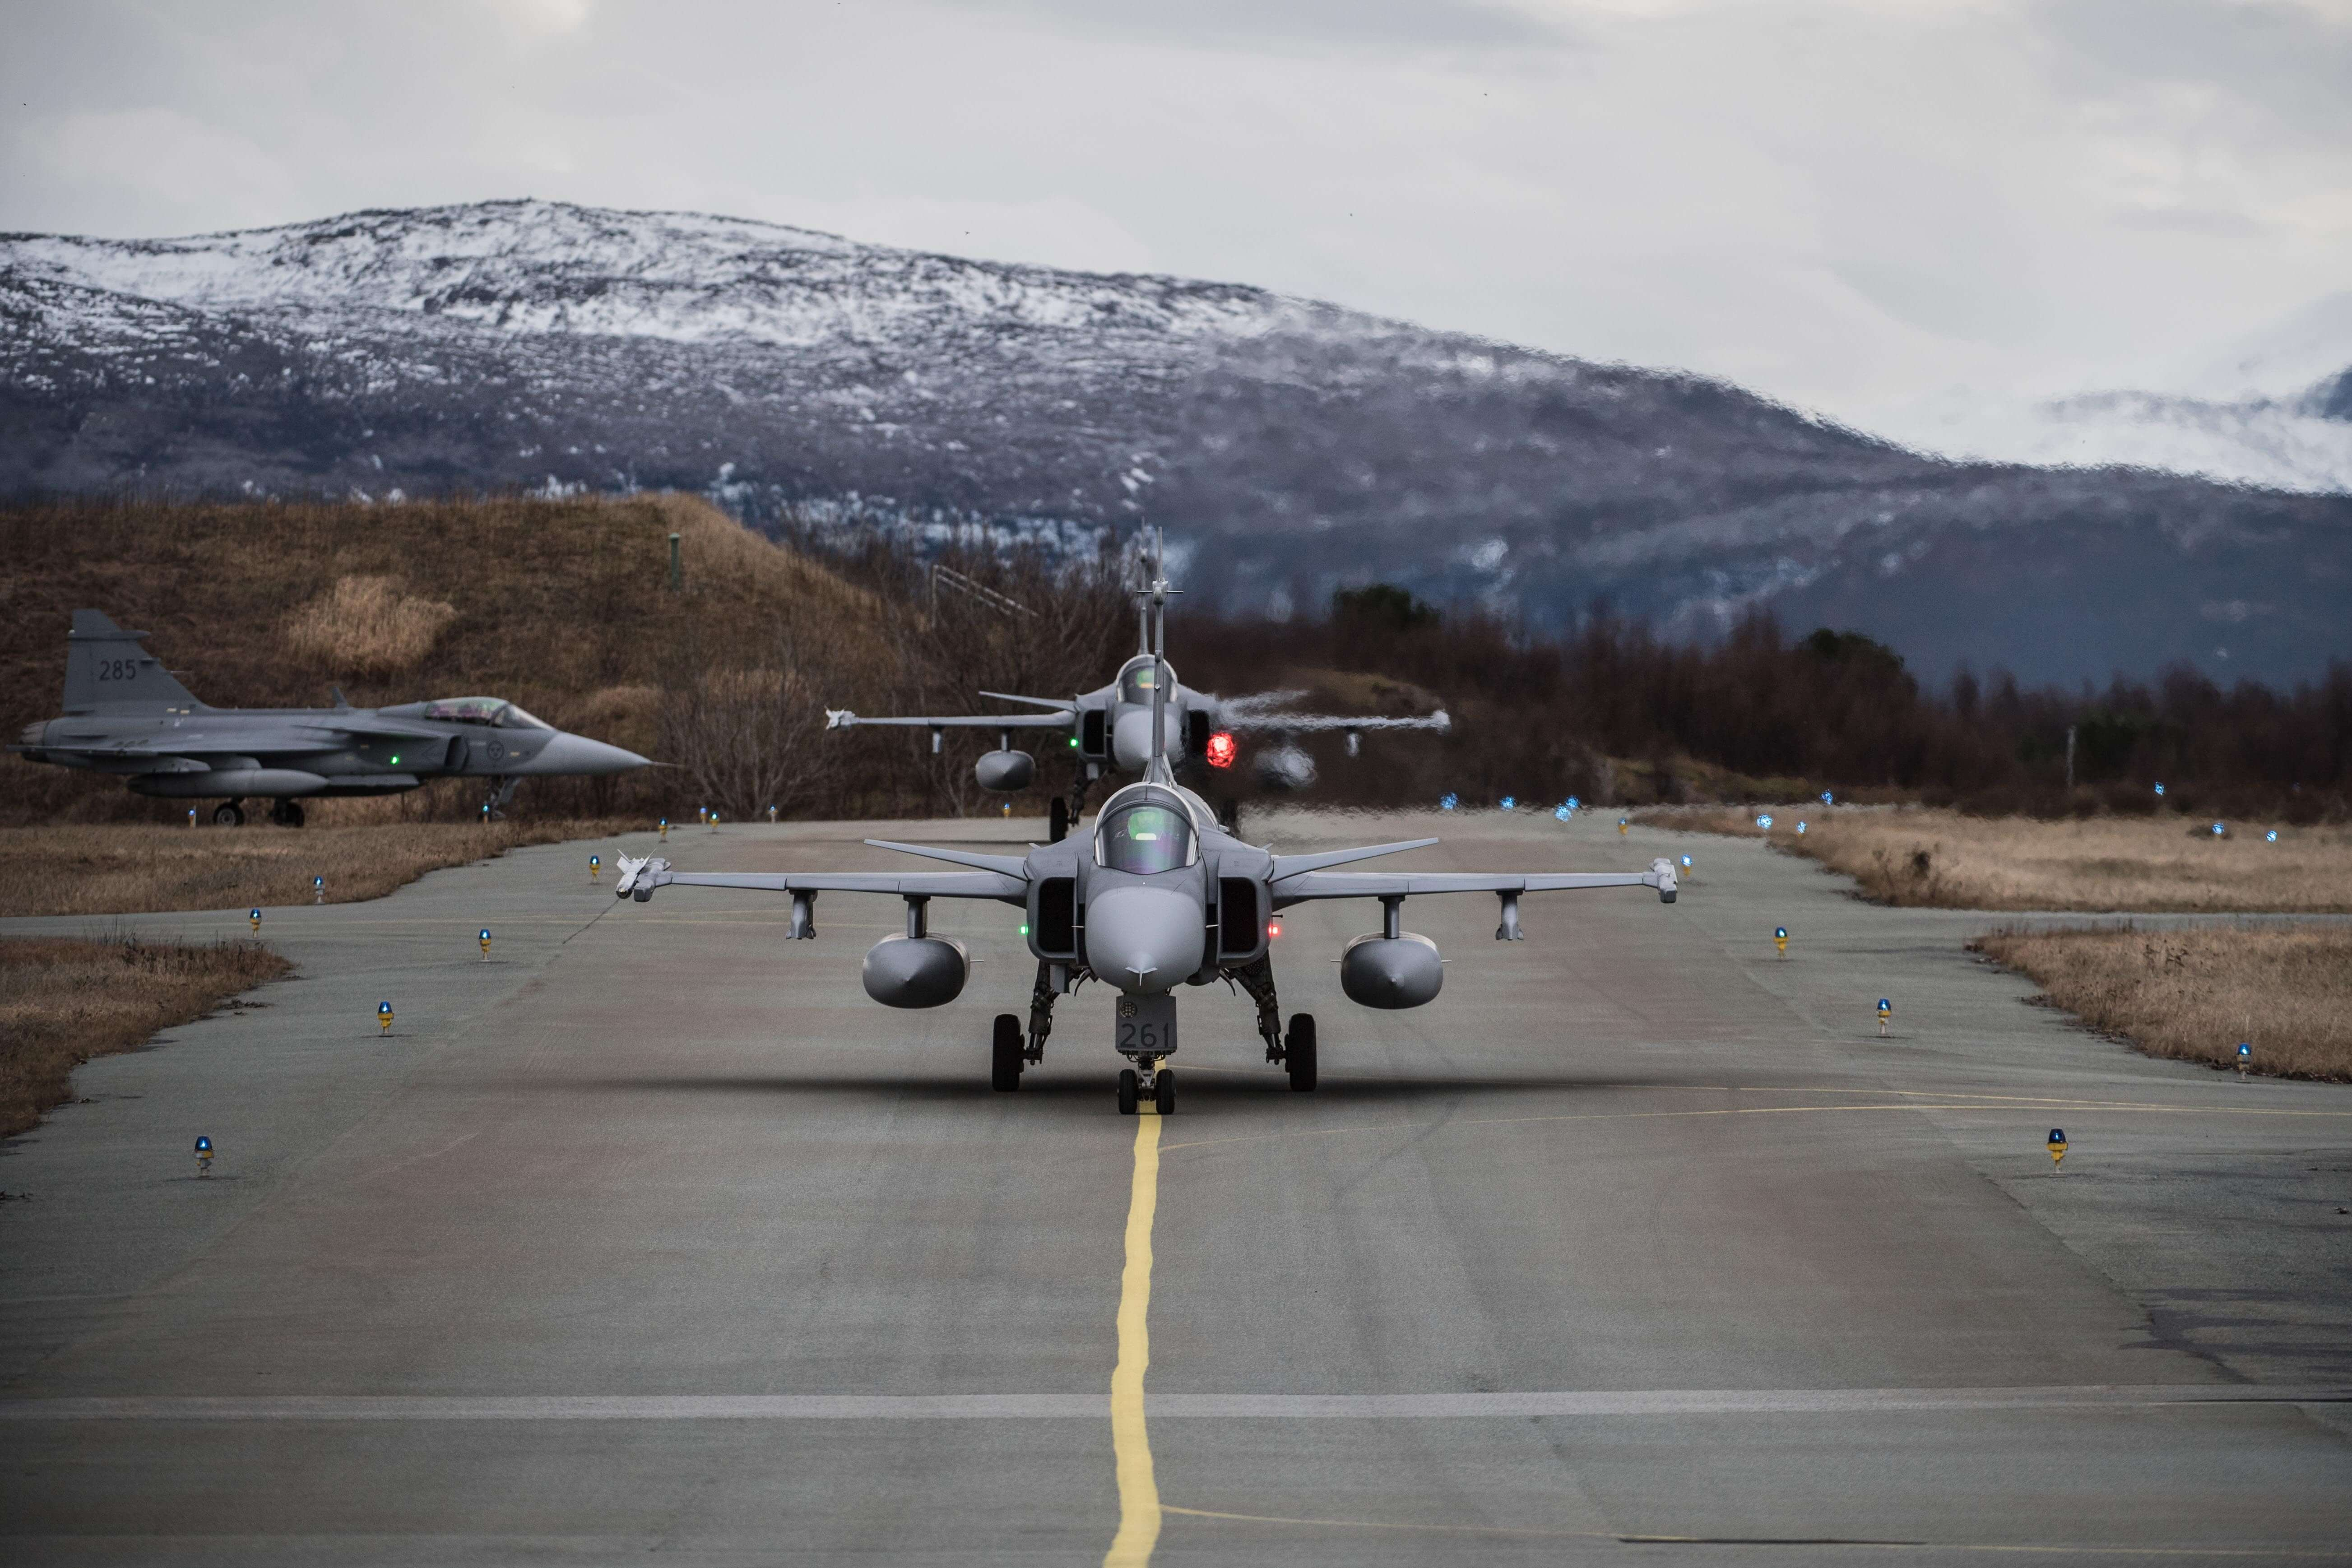 Swedish JAS 39 Gripens before take off during exercise Trident Juncture. © NATO North Atlantic Treaty Organization/Flickr